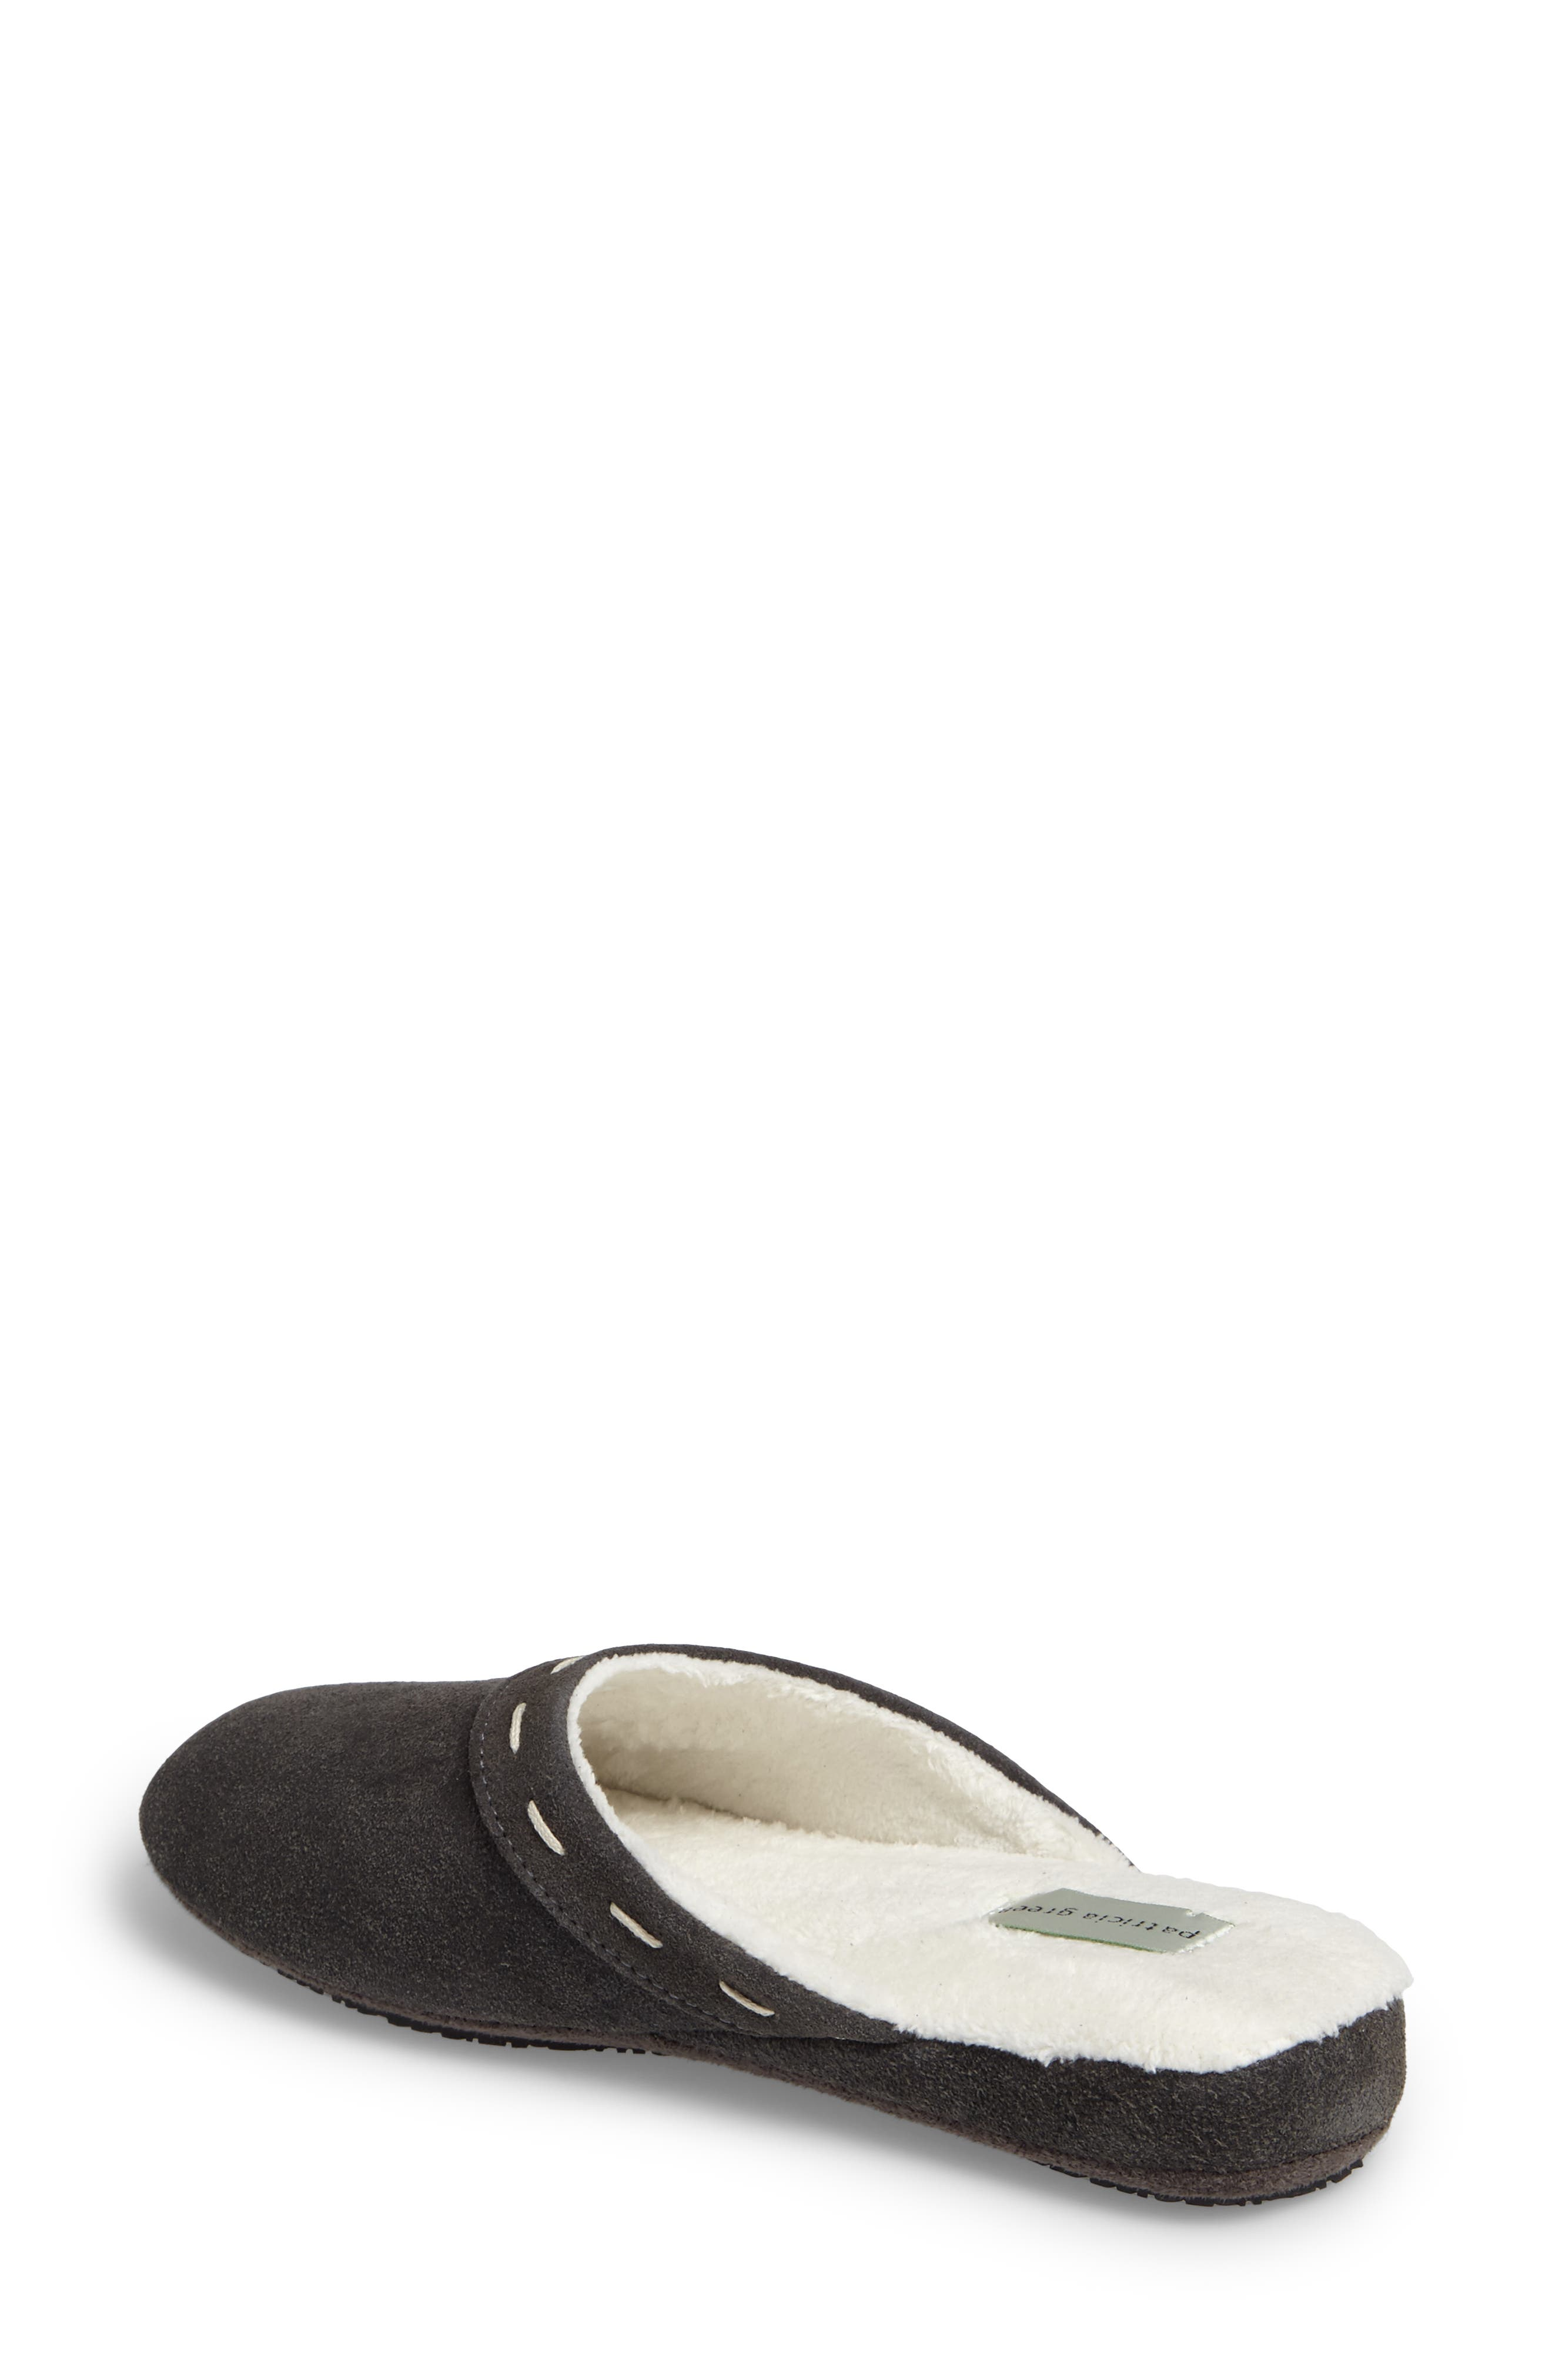 Mayfair Wedge Slipper,                             Alternate thumbnail 2, color,                             Charcoal Suede